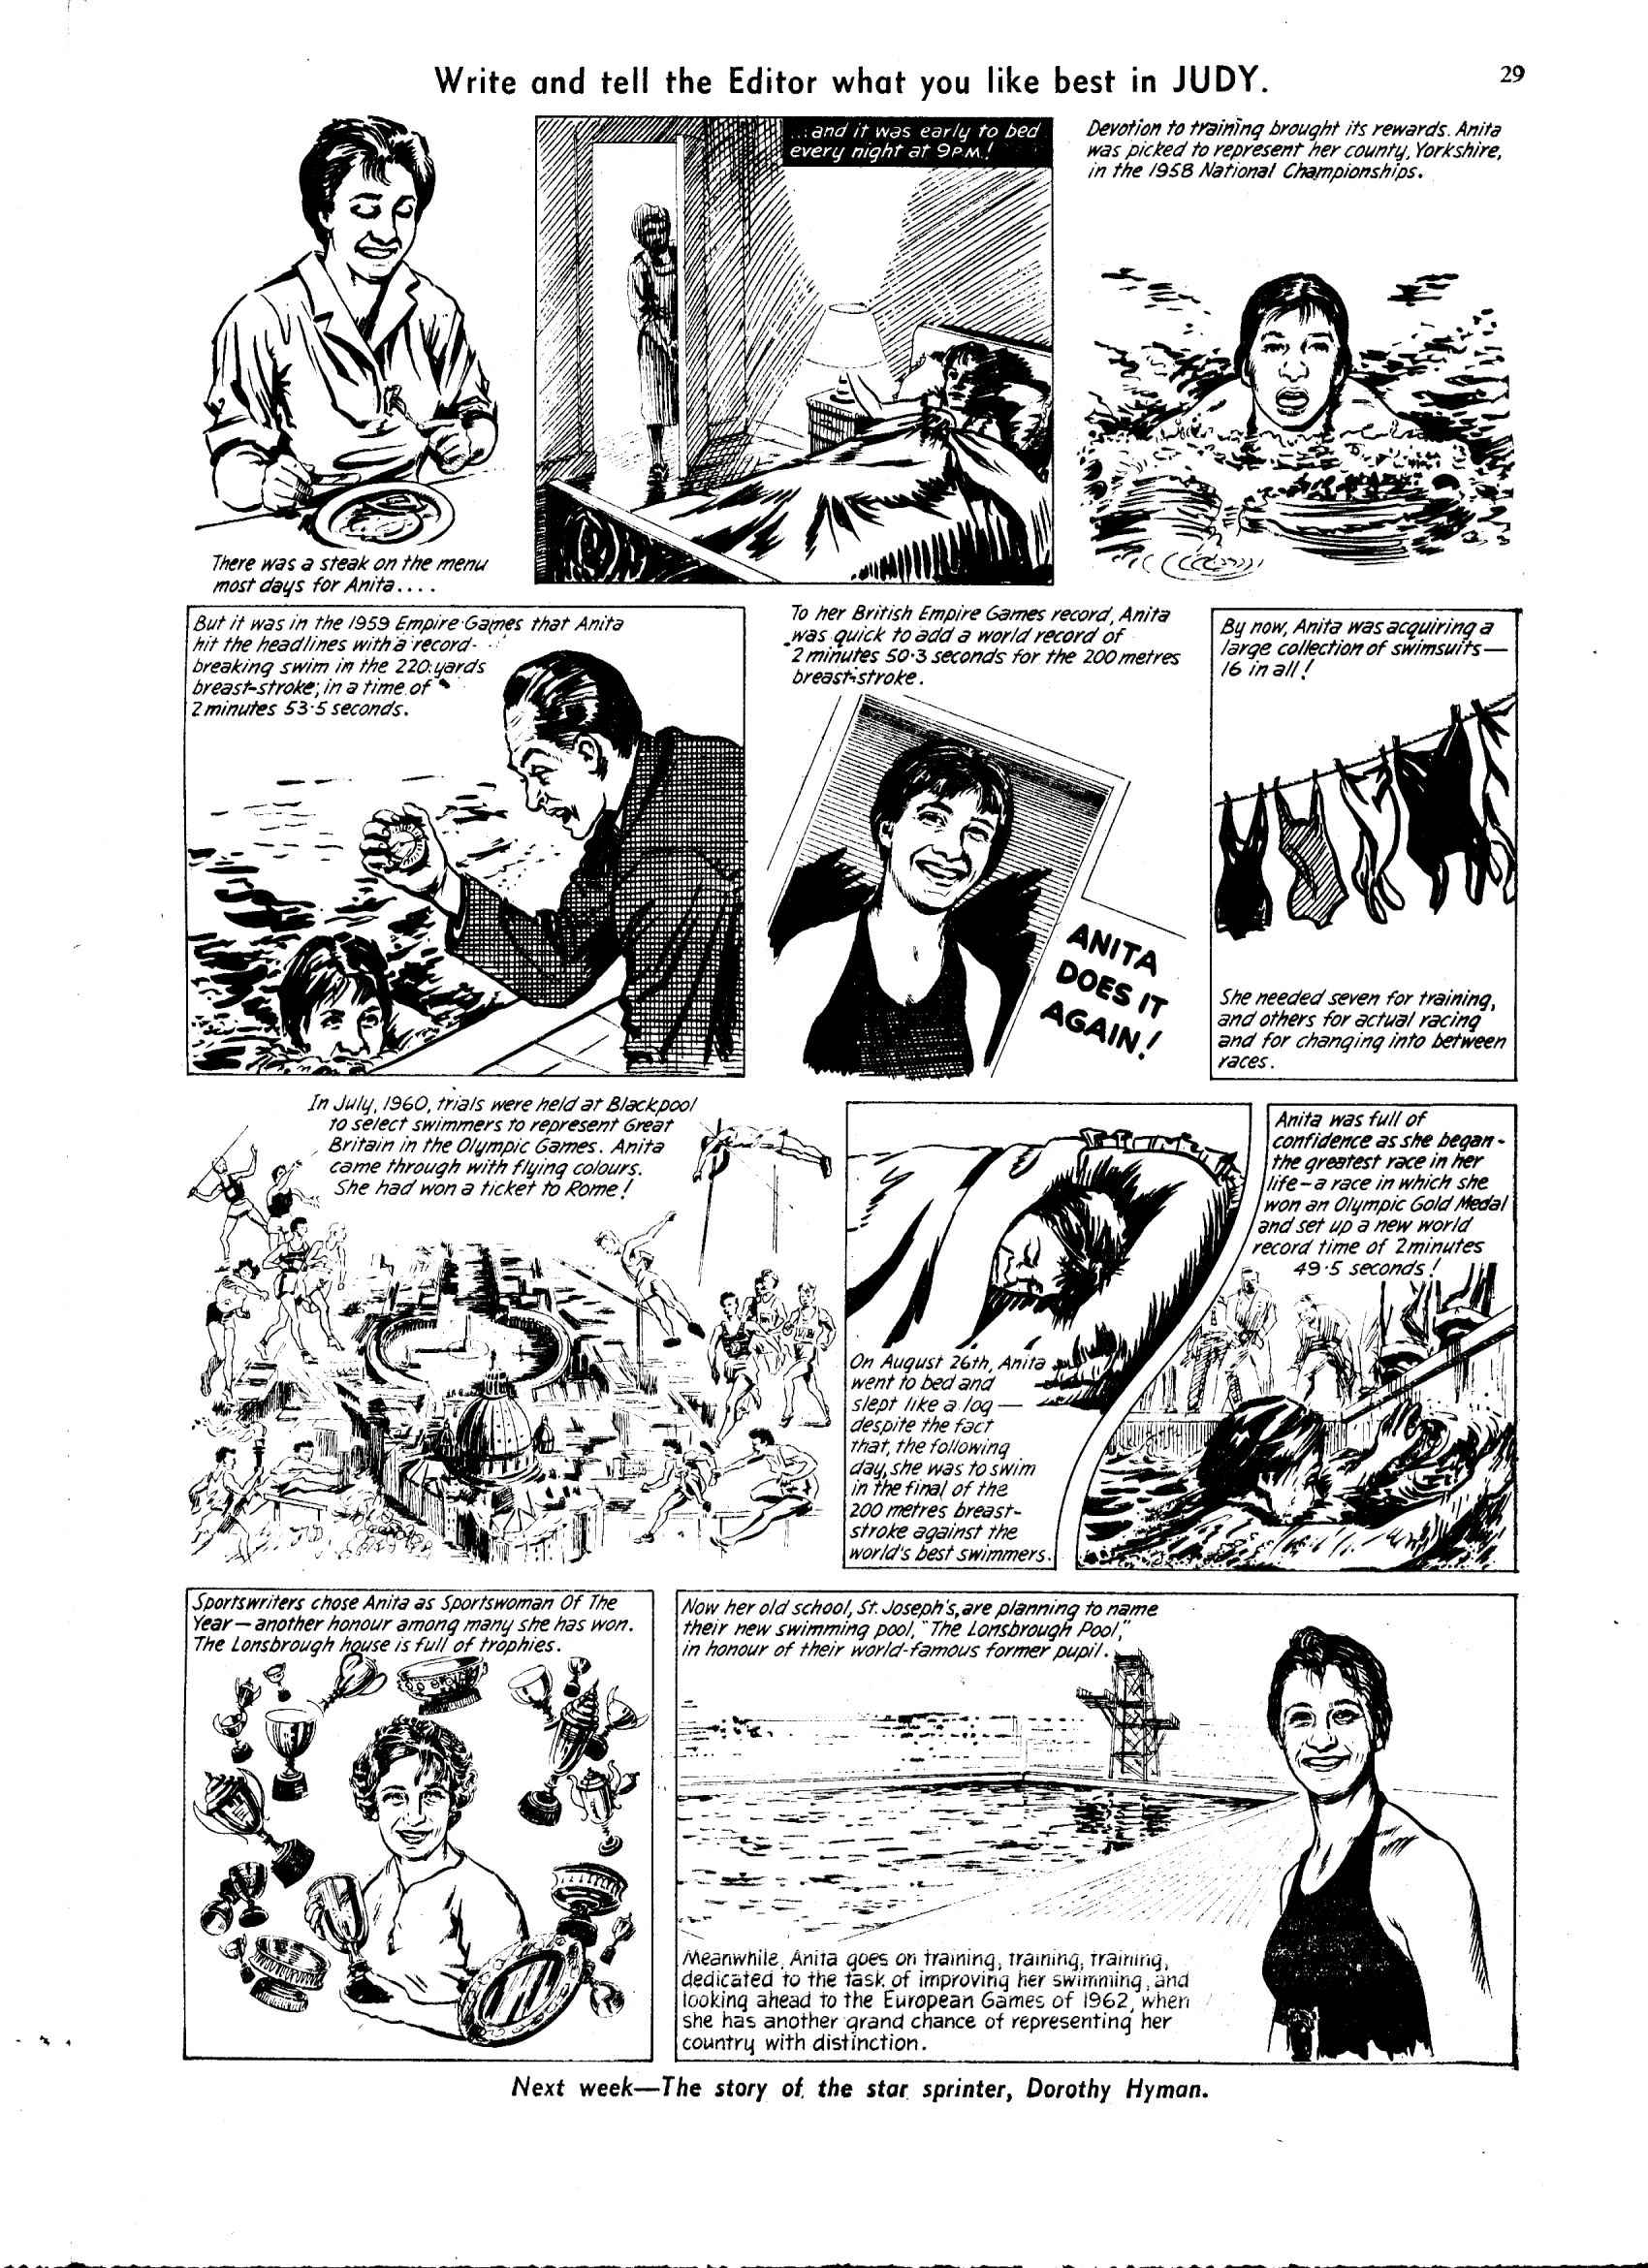 Read online Judy comic -  Issue #60 - 29